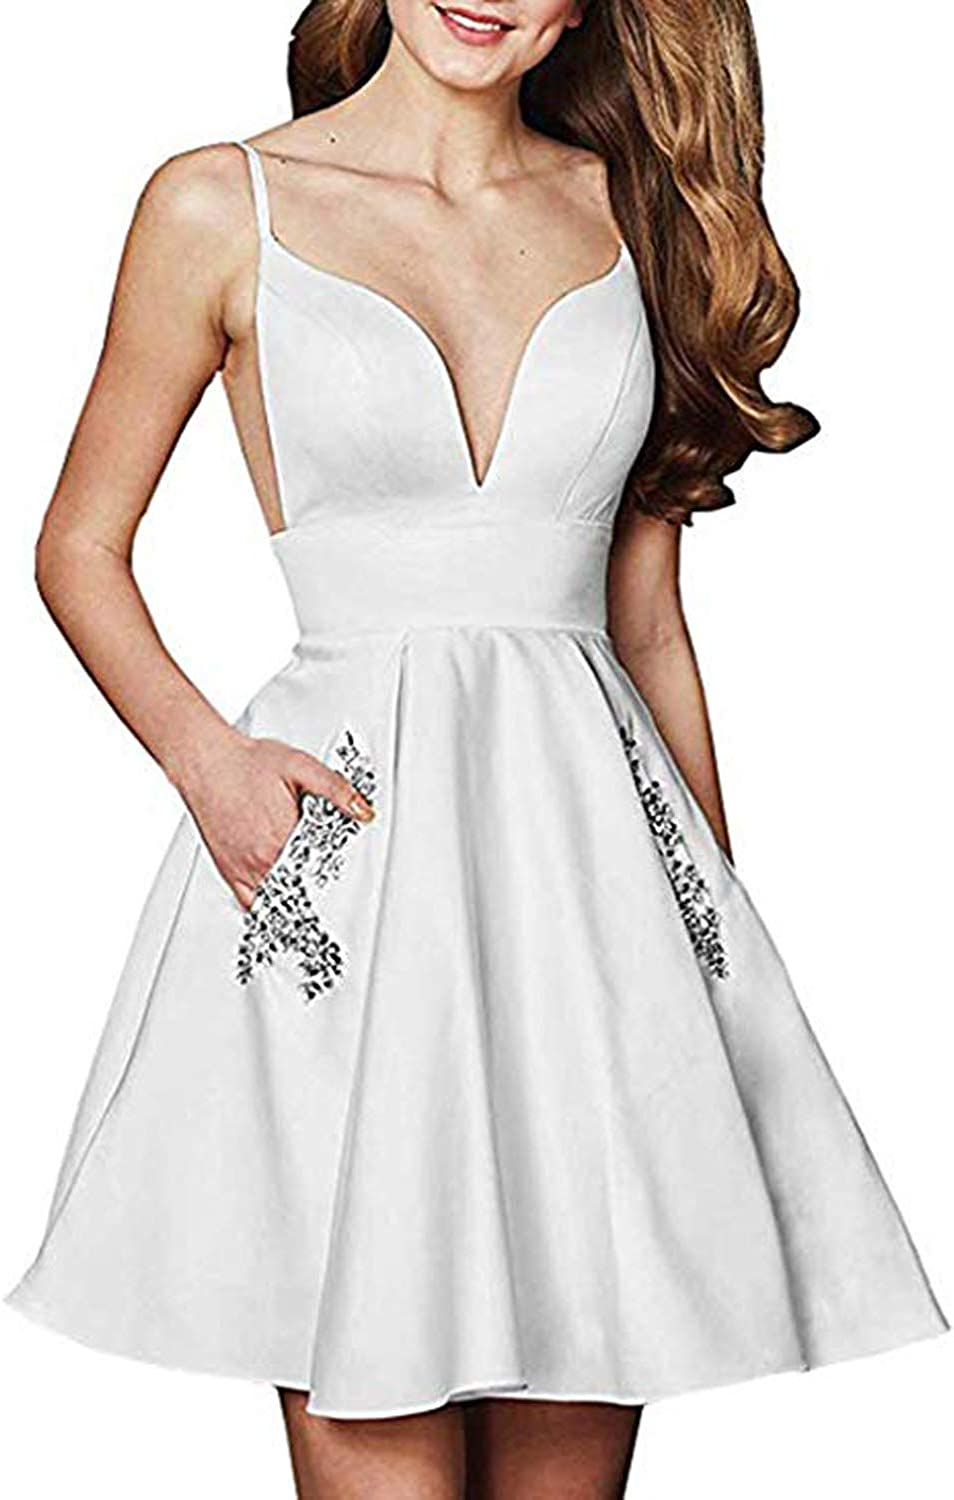 ALine Beaded Satin Homecoming Dress Short Backless Prom Party Gown with Pockets QJG014